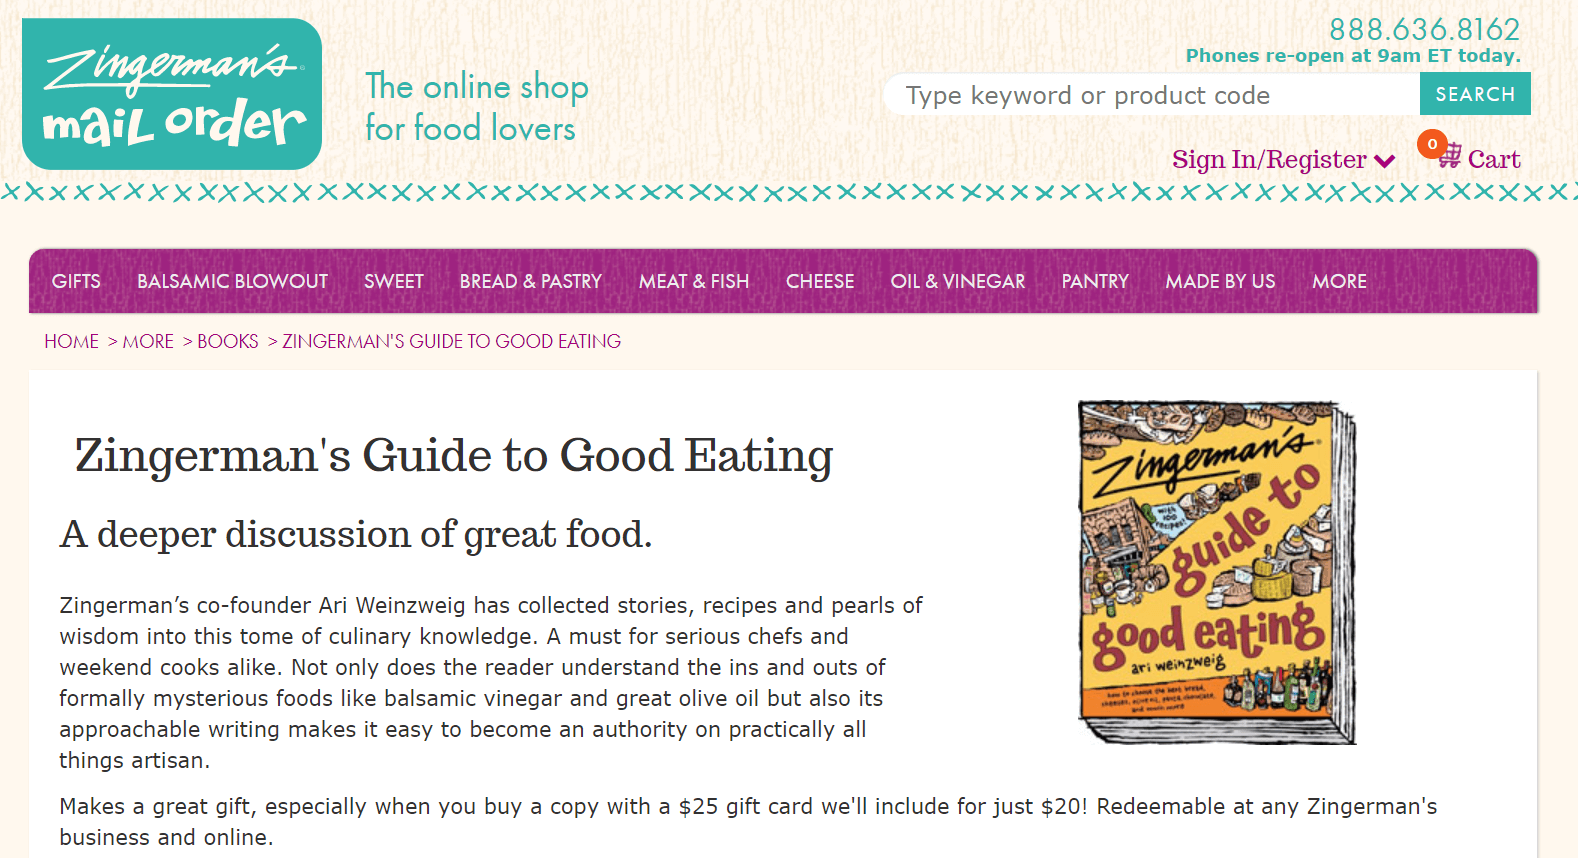 Zingerman Ecommerce Content Marketing Examples